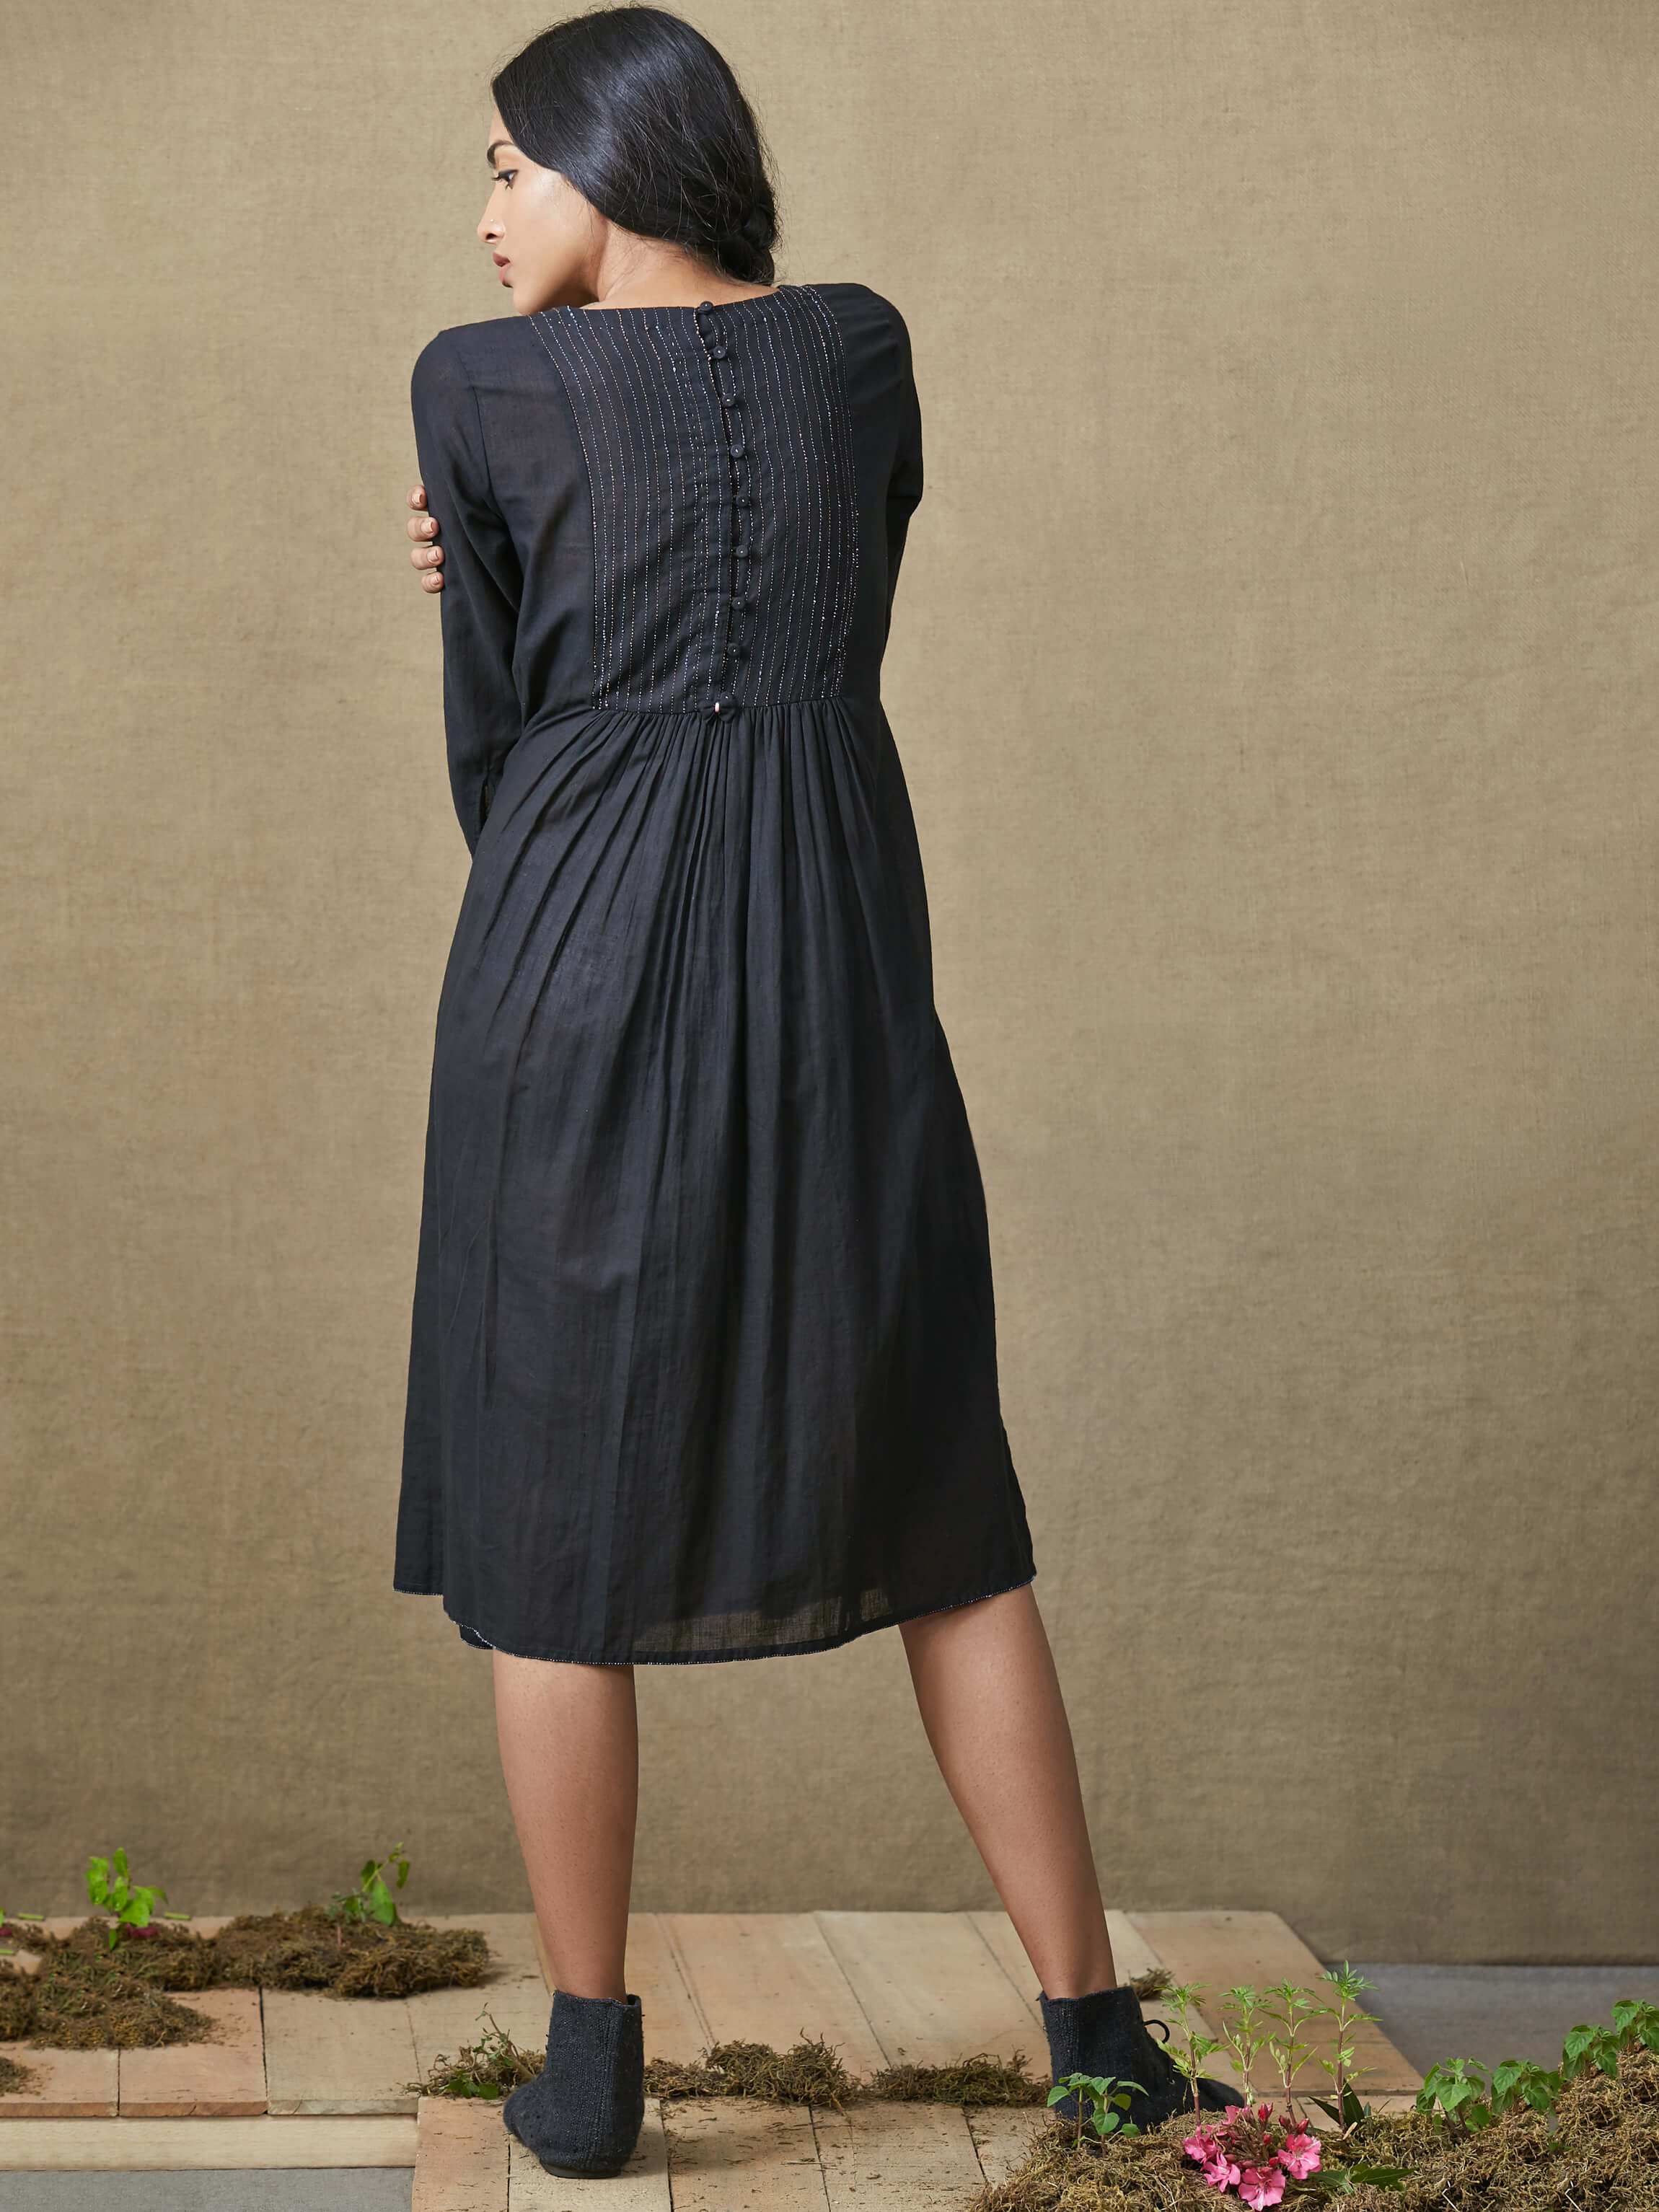 Wabi Sabi Midi Dress - BunaStudio